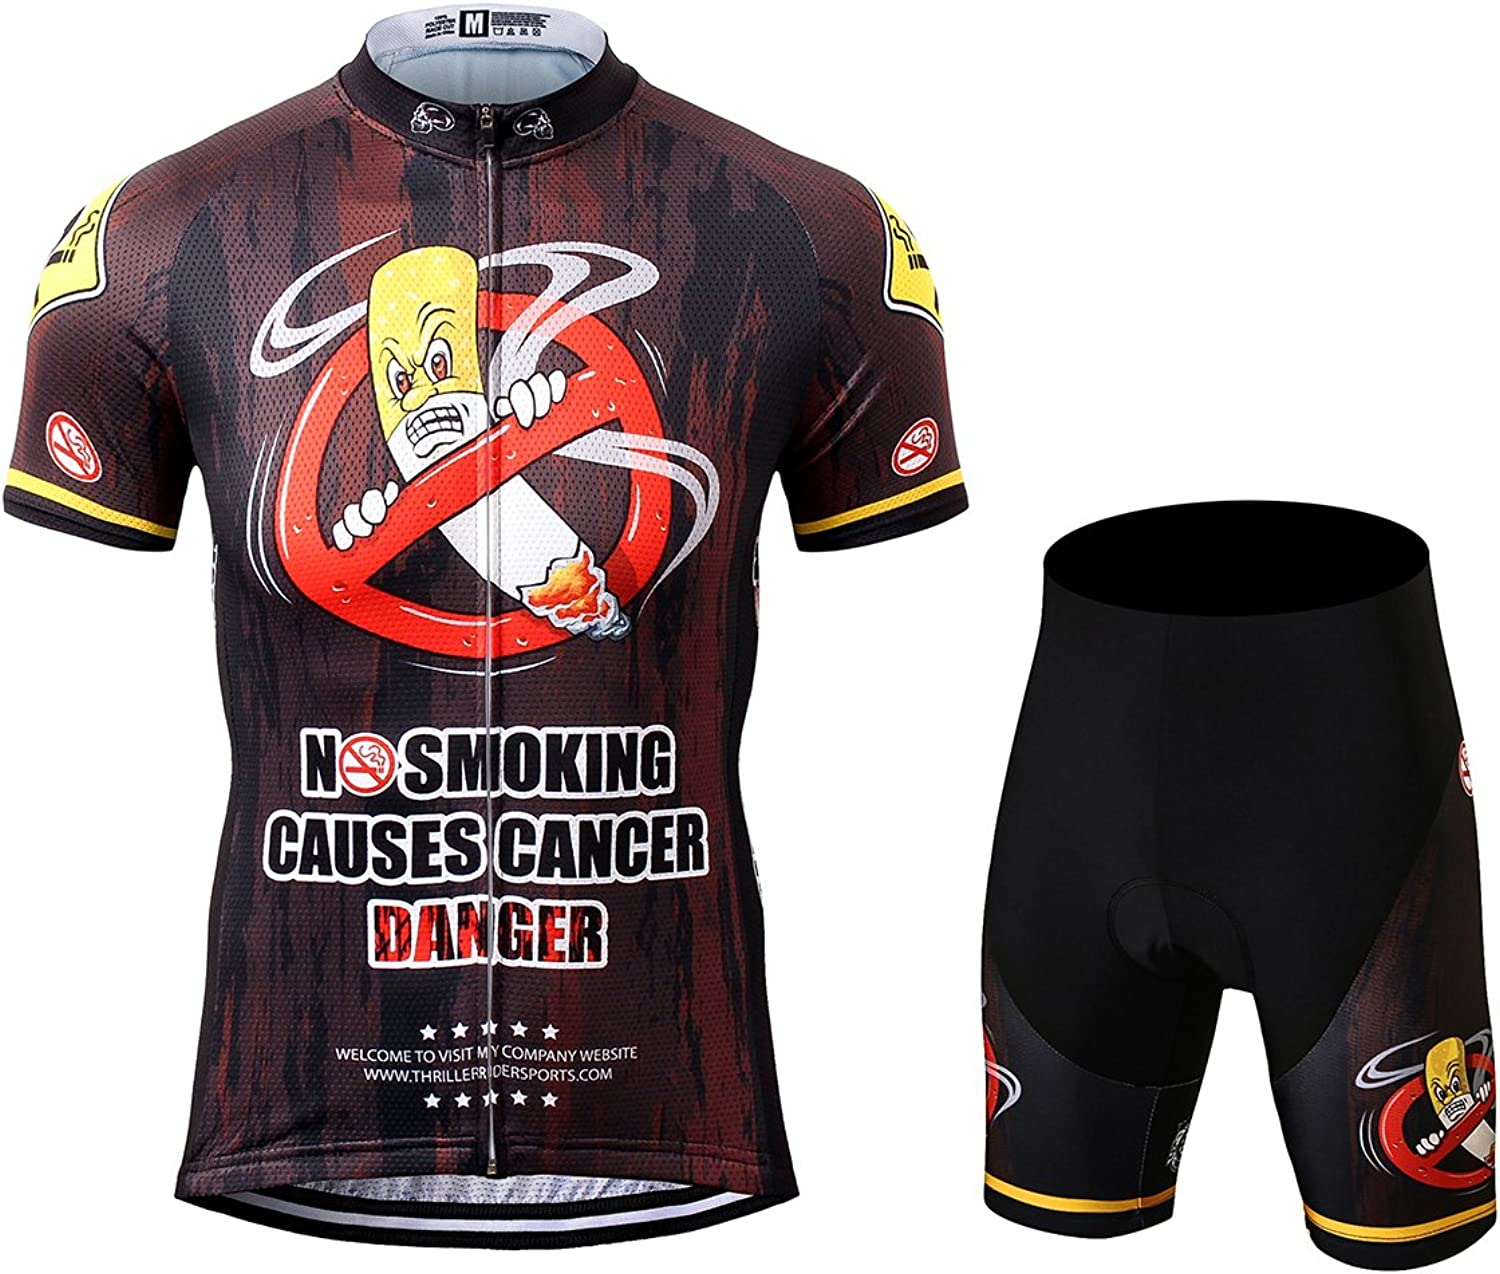 TRS0013 LAOYOU Men's Cycling Jersey Mountain Bike Sports Short Sleeve Jersey Bicycle Cycle Shirt Wear Comfortable Breathable Shirts Tops